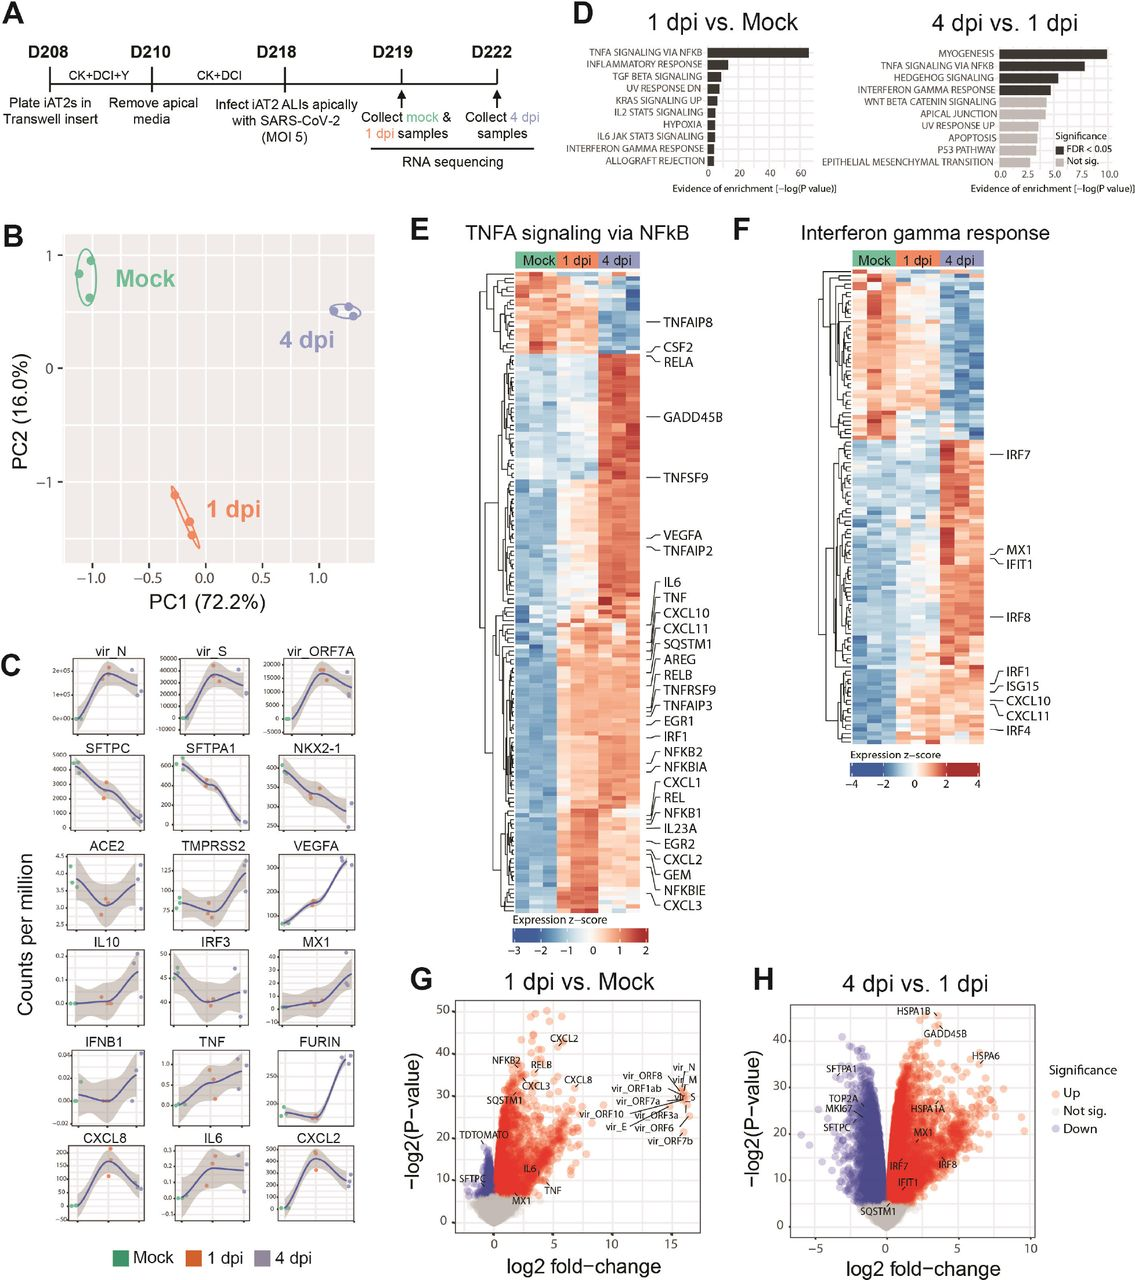 SARS-CoV-2 elicits transcriptomic changes in iAT2s that highlight epithelial-intrinsic inflammatory responses to infection. (A) Schematic of the iAT2 ALI samples (starting with Day 208 iAT2s) infected with SARS-CoV-2 (MOI 5) and collected at 1 and 4 dpi (mock collected 1 dpi) for bulk RNA sequencing (RNA-seq). (B) Principal component analysis (PCA) of iAT2 samples (n=3 biological replicates per condition) showing global transcriptomic variance (%) of PC1 and PC2 components. (C) Local regression (LOESS) plots of viral, AT2, NF-kB, and interferon (IFN) gene expression levels quantified by RNA-seq normalized expression (counts per million reads). (D) Gene set enrichment analysis (GSEA, Camera using Hallmark gene sets) of the top 10 upregulated gene sets in 1 dpi vs. mock or 4 dpi vs. 1 dpi conditions (black color indicates statistical significance; FDR